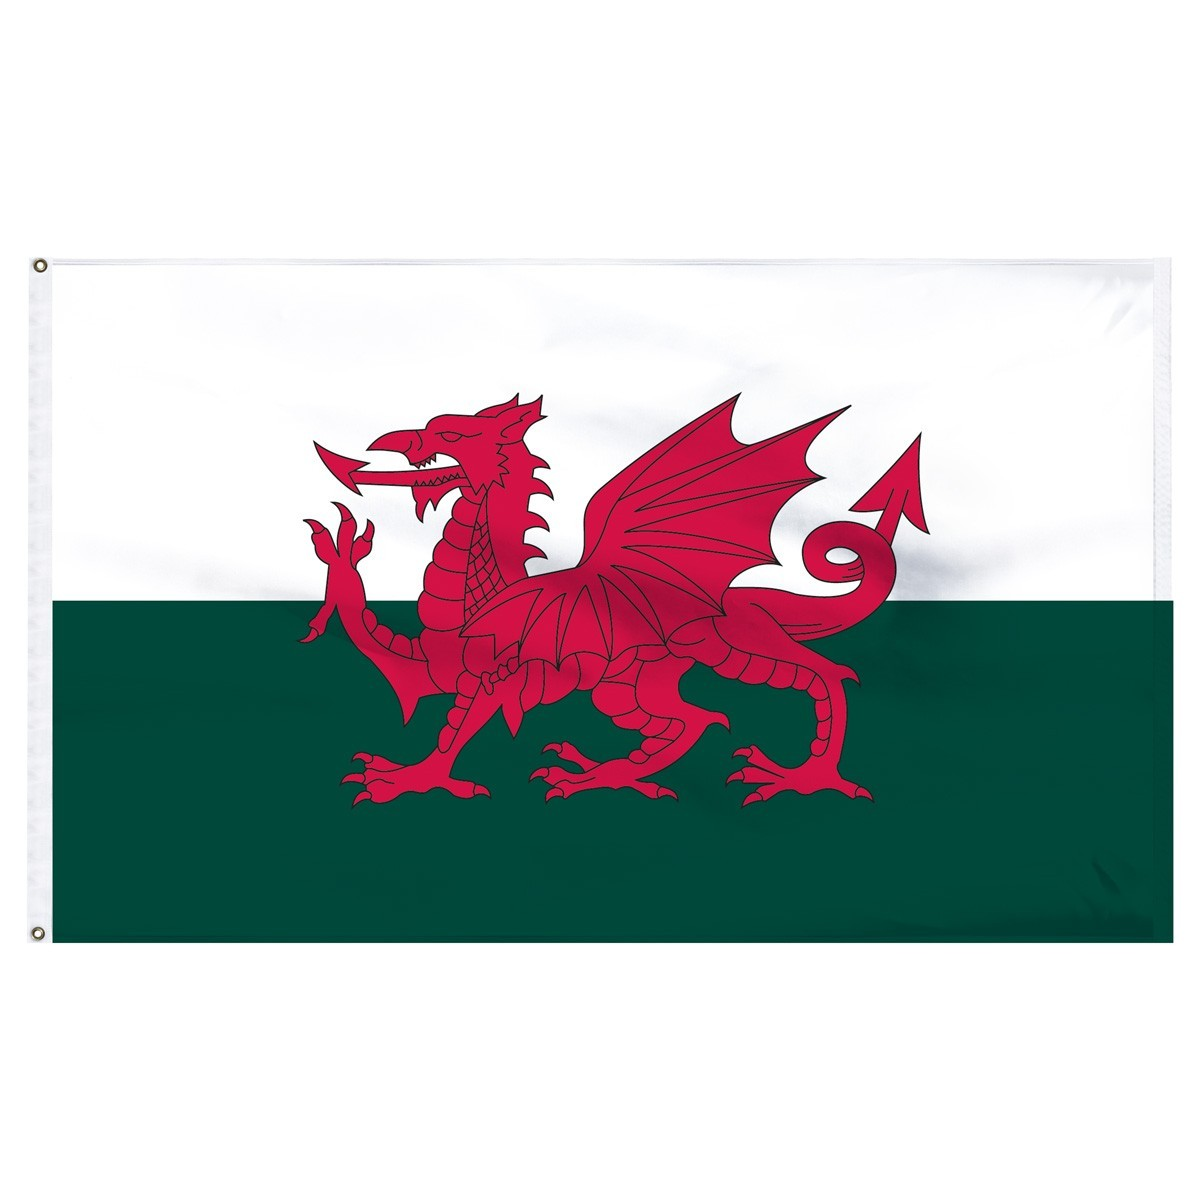 Wales 3' x 5' Outdoor Nylon Flag